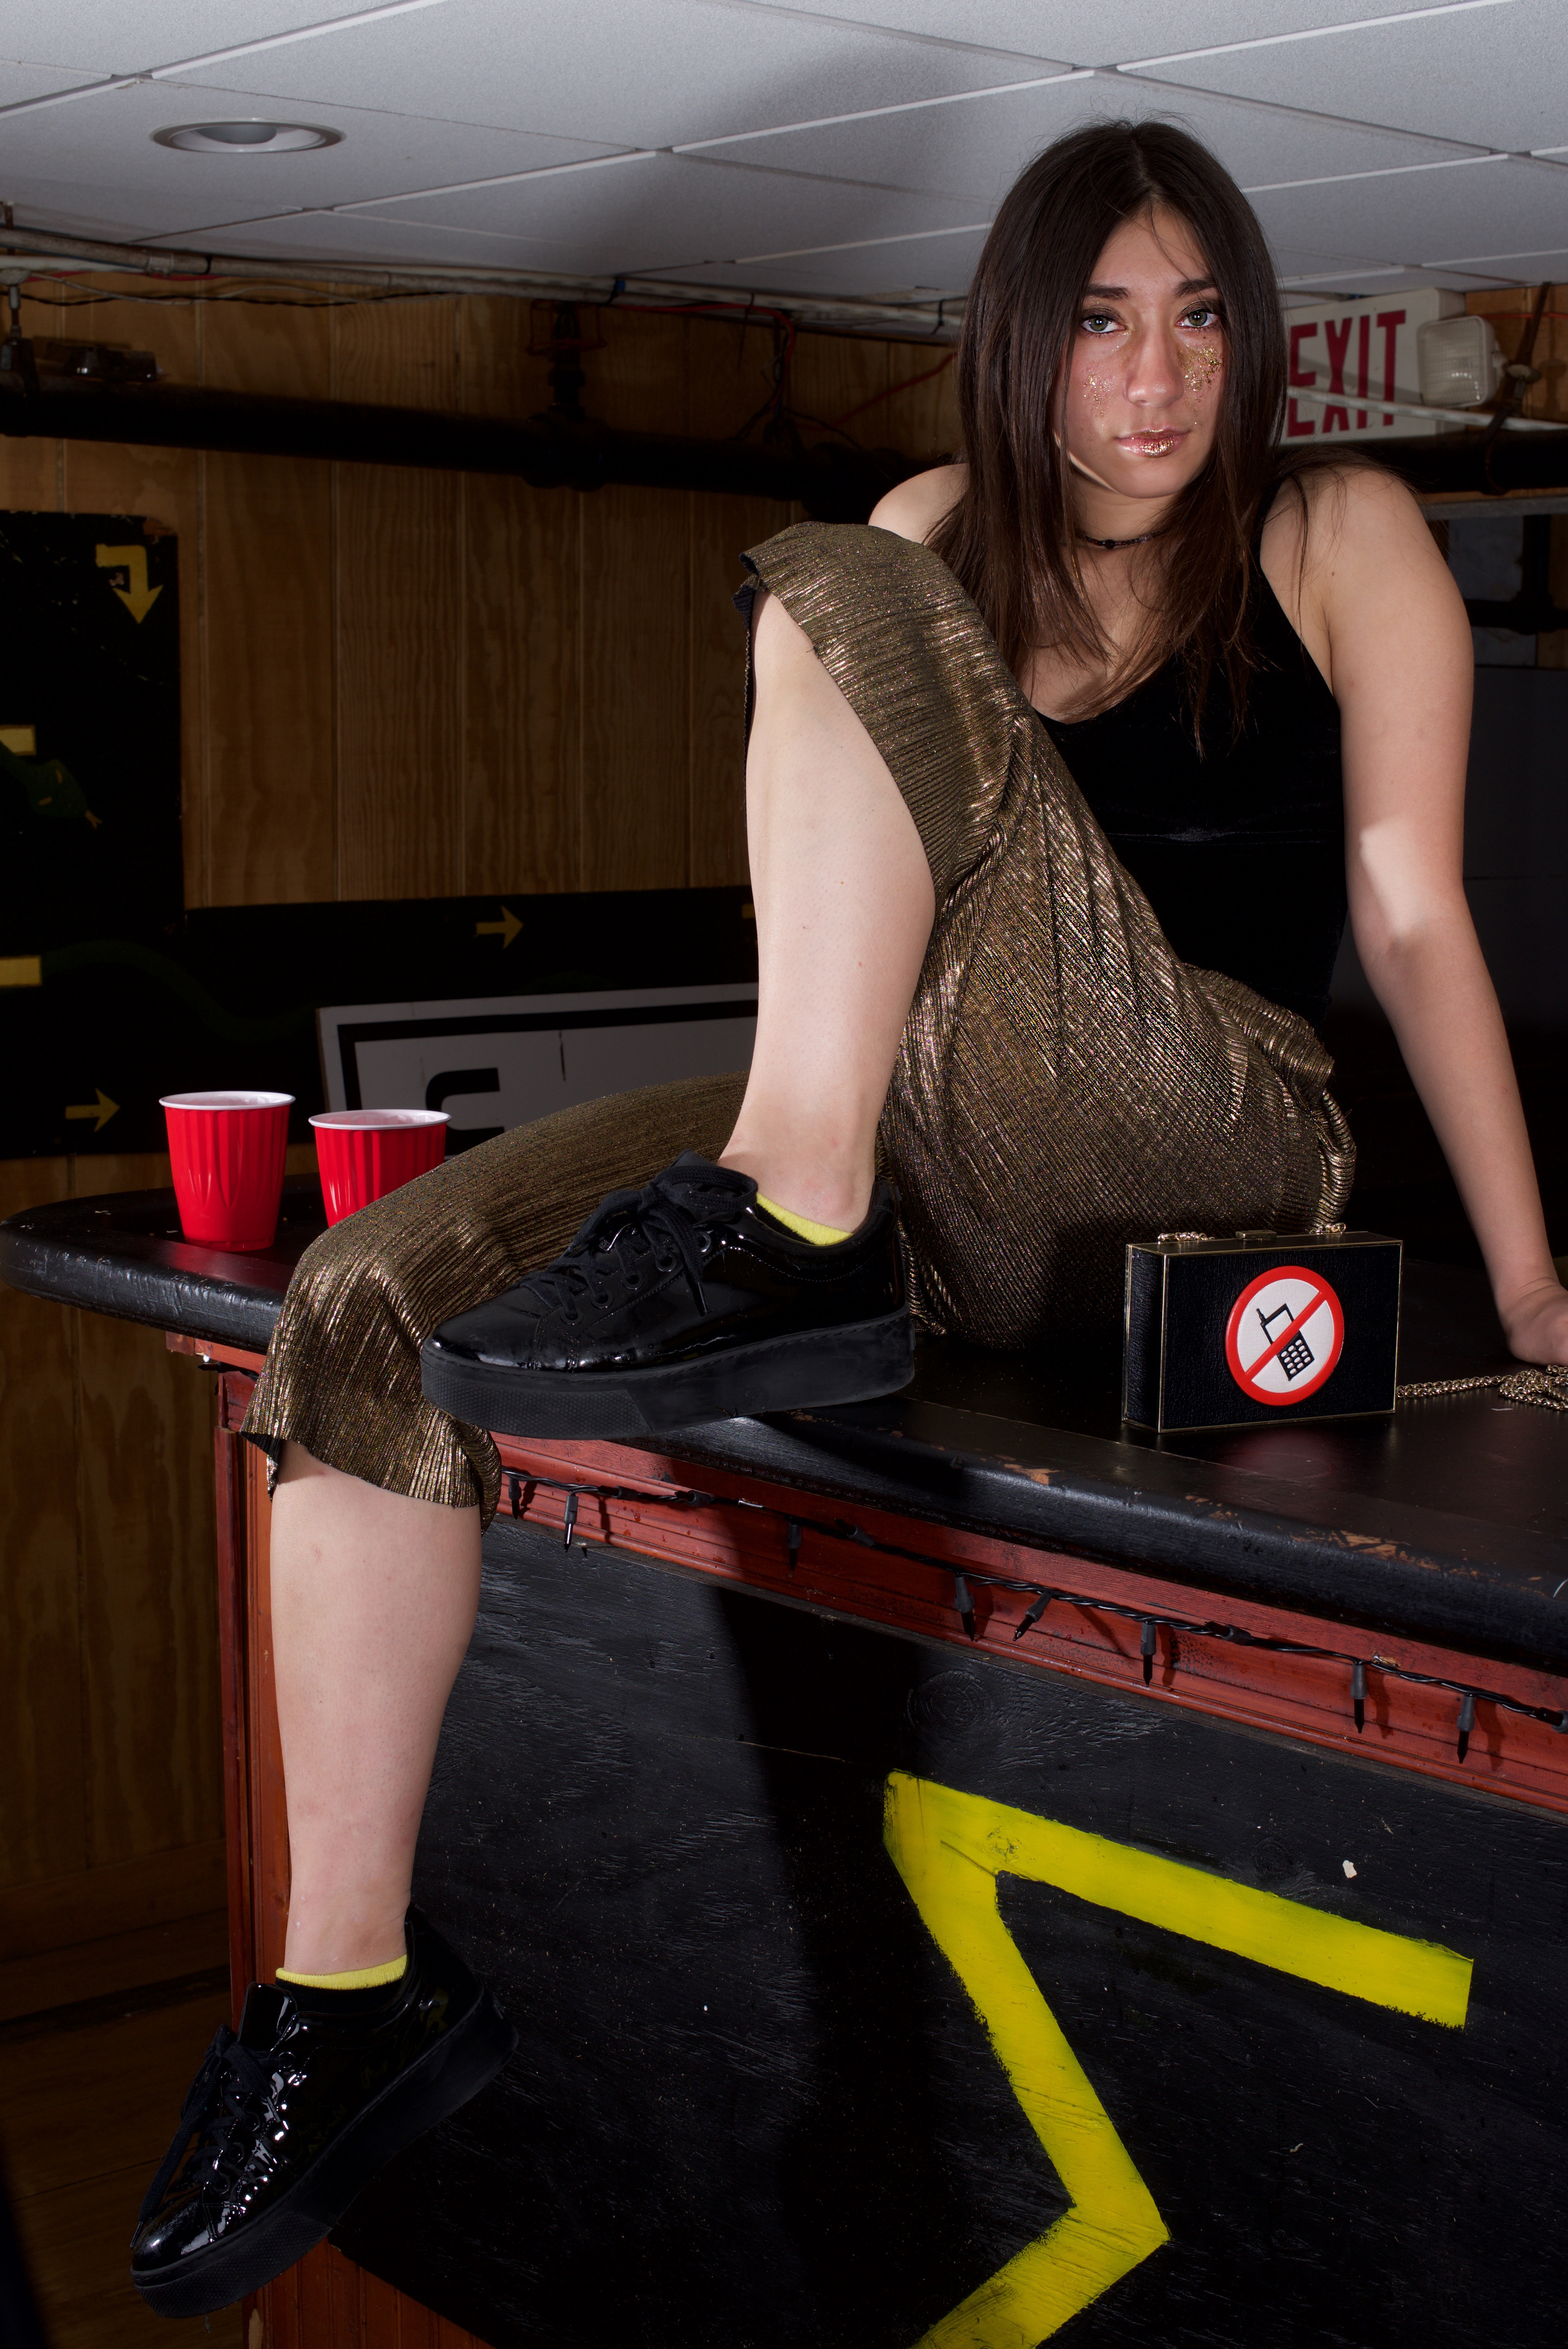 Elizabeth_Beugg_fashion_photography_magazine_editorial_party_wear_sexy_pool_table_photo